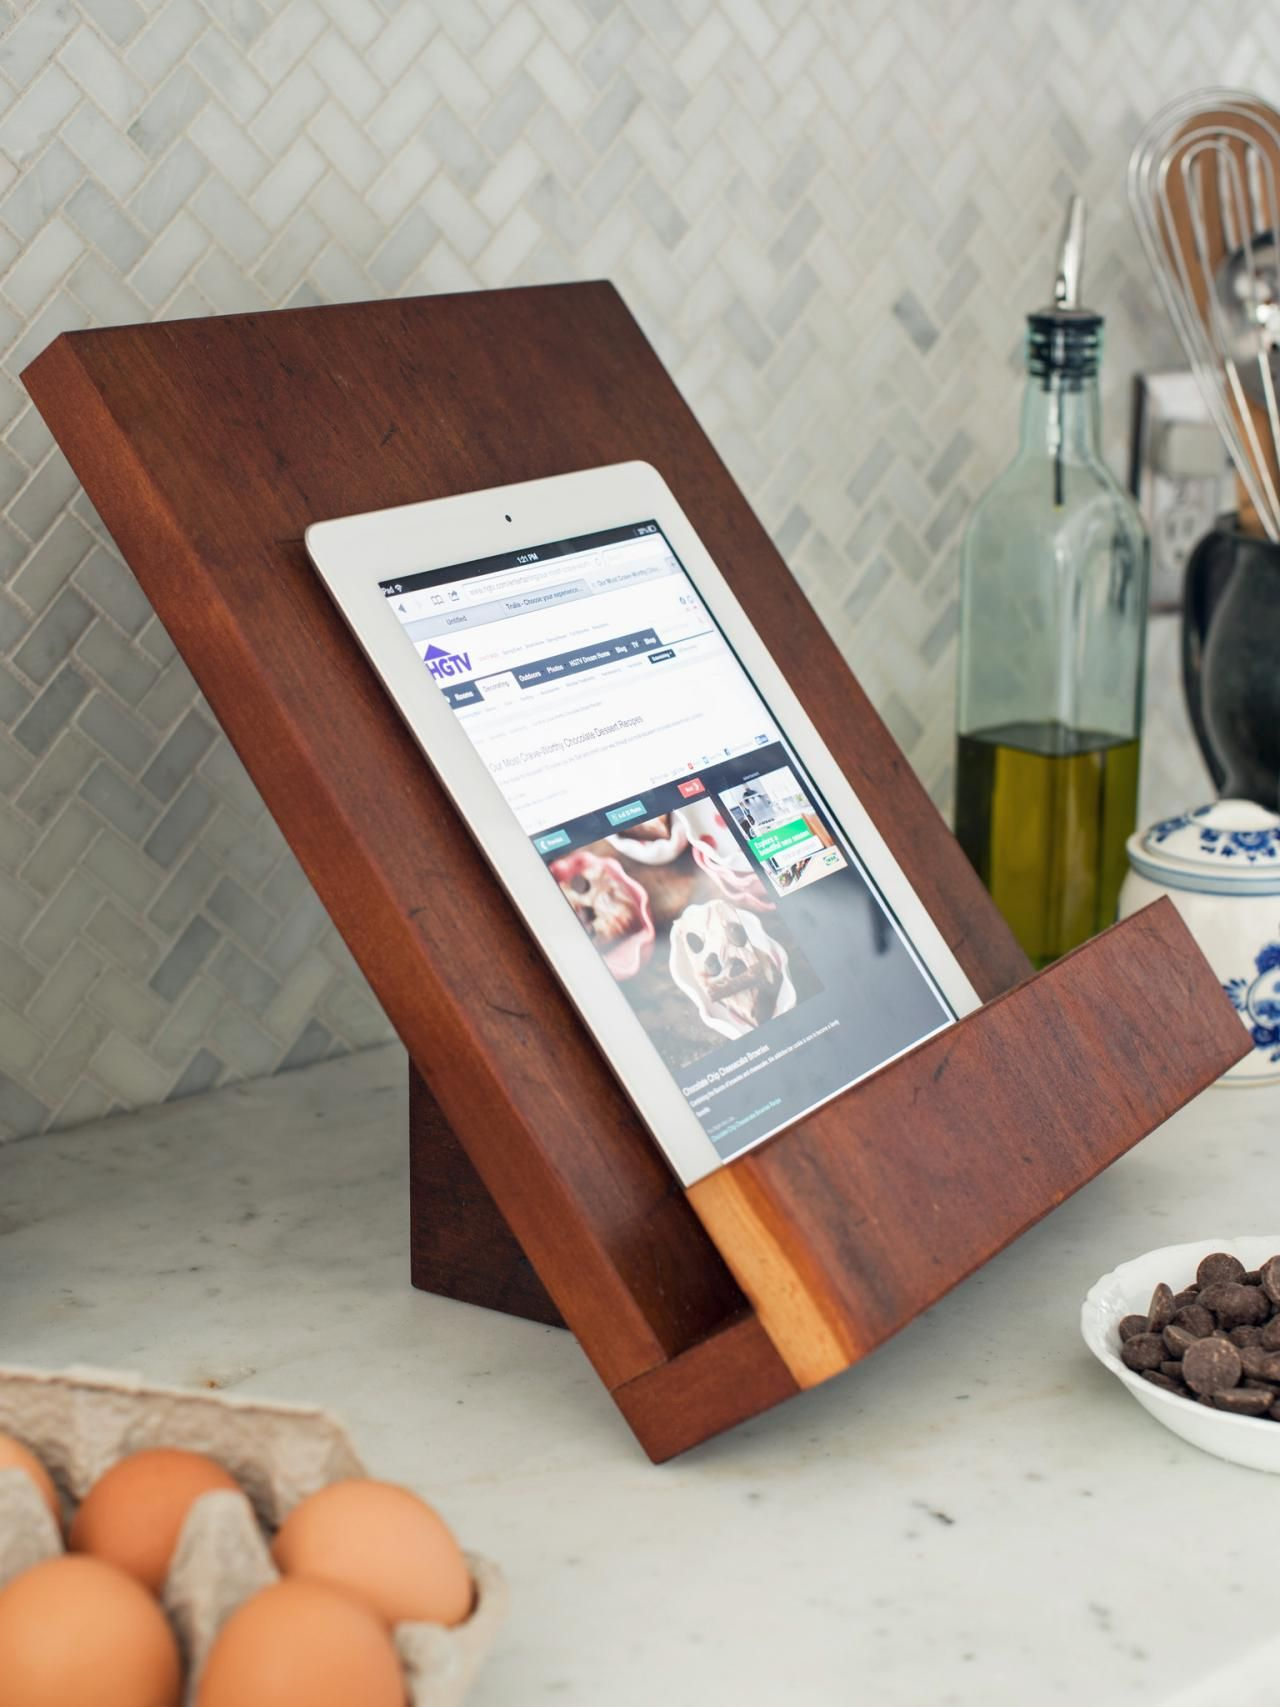 How To Make A Modern Tablet Or Cookbook Stand Easy Crafts And Homemade Decorating Gift Ideas Hgtv In 2020 Cookbook Stand Diy Cookbook Holder Cook Book Stand